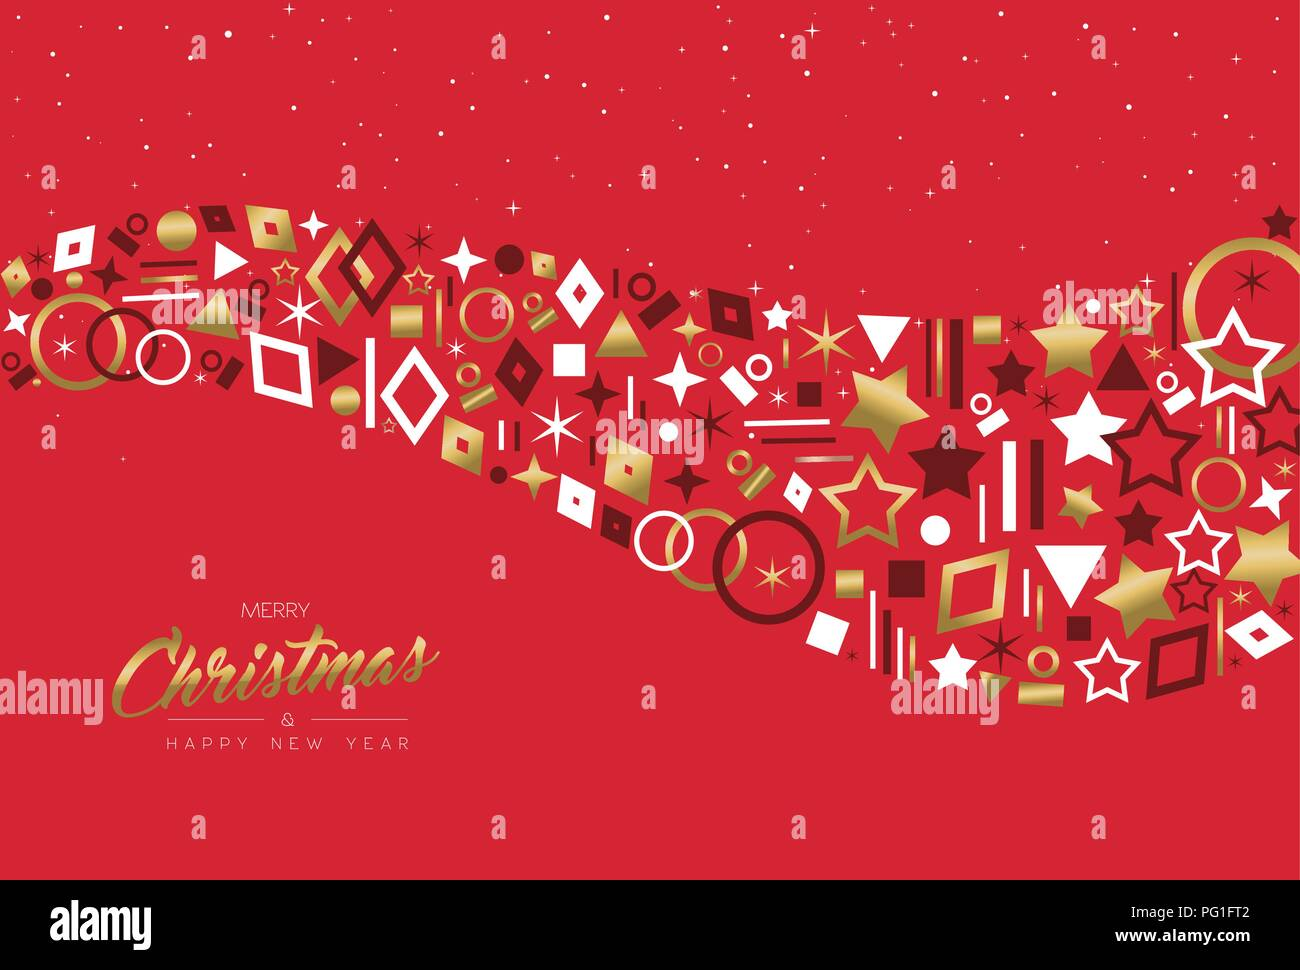 merry christmas and happy new year greeting card design with elegant gold color decoration icons on red holidays background eps10 vector